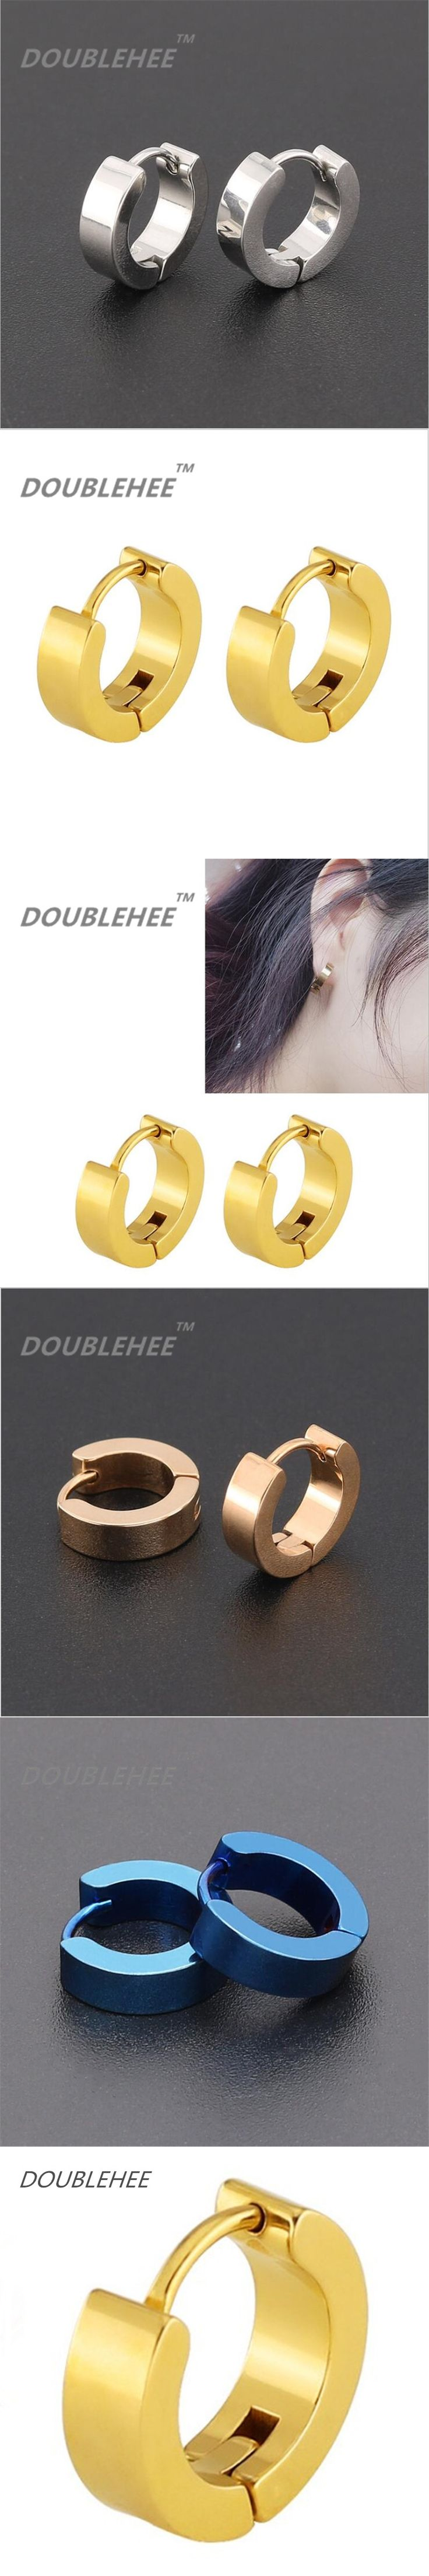 DOUBLEHEE 2017 New Quality Euro and US Pop Brief Flat 9mm Round Circle Earrings 316L Stainless Steel For women and mail